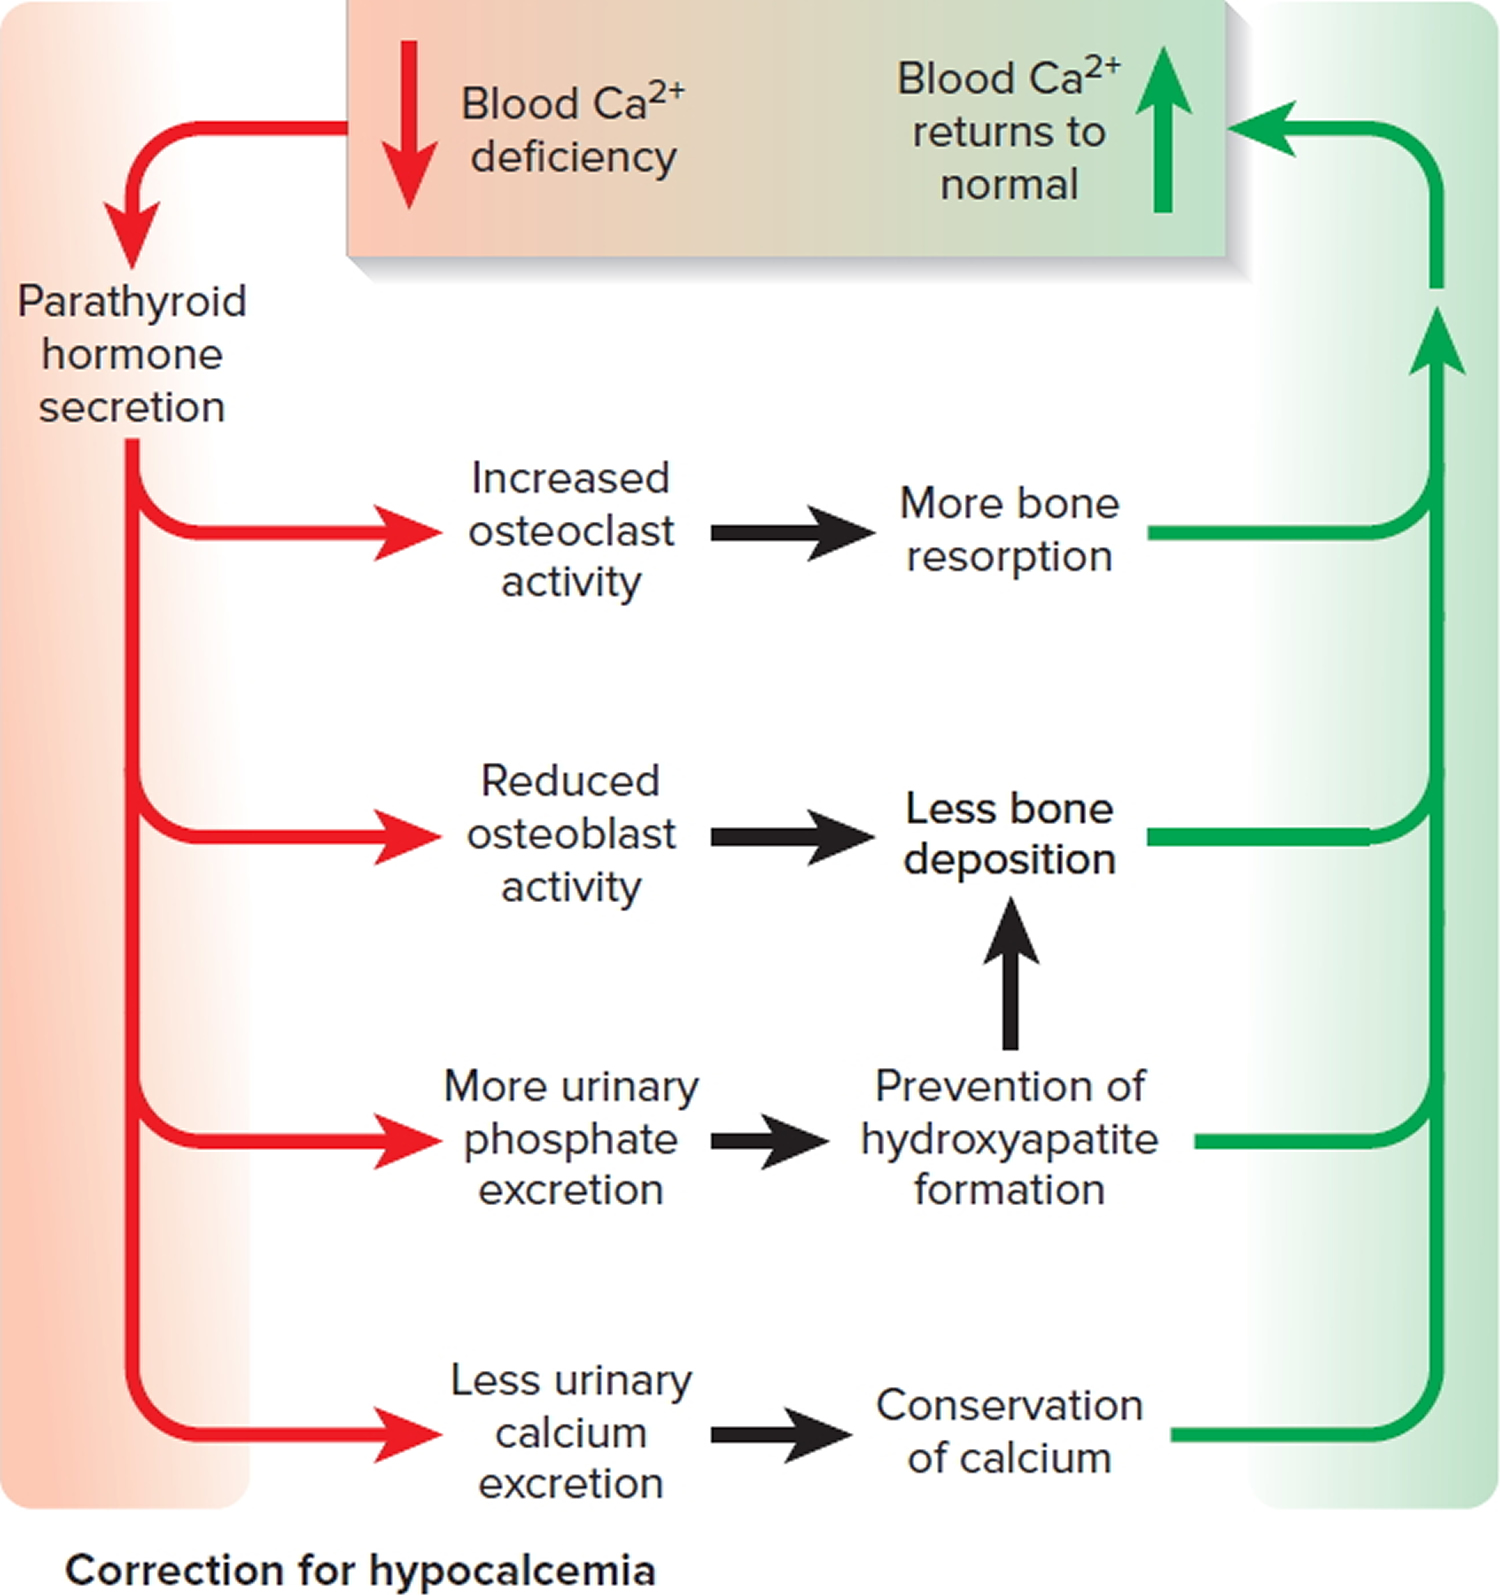 correction of low blood calcium